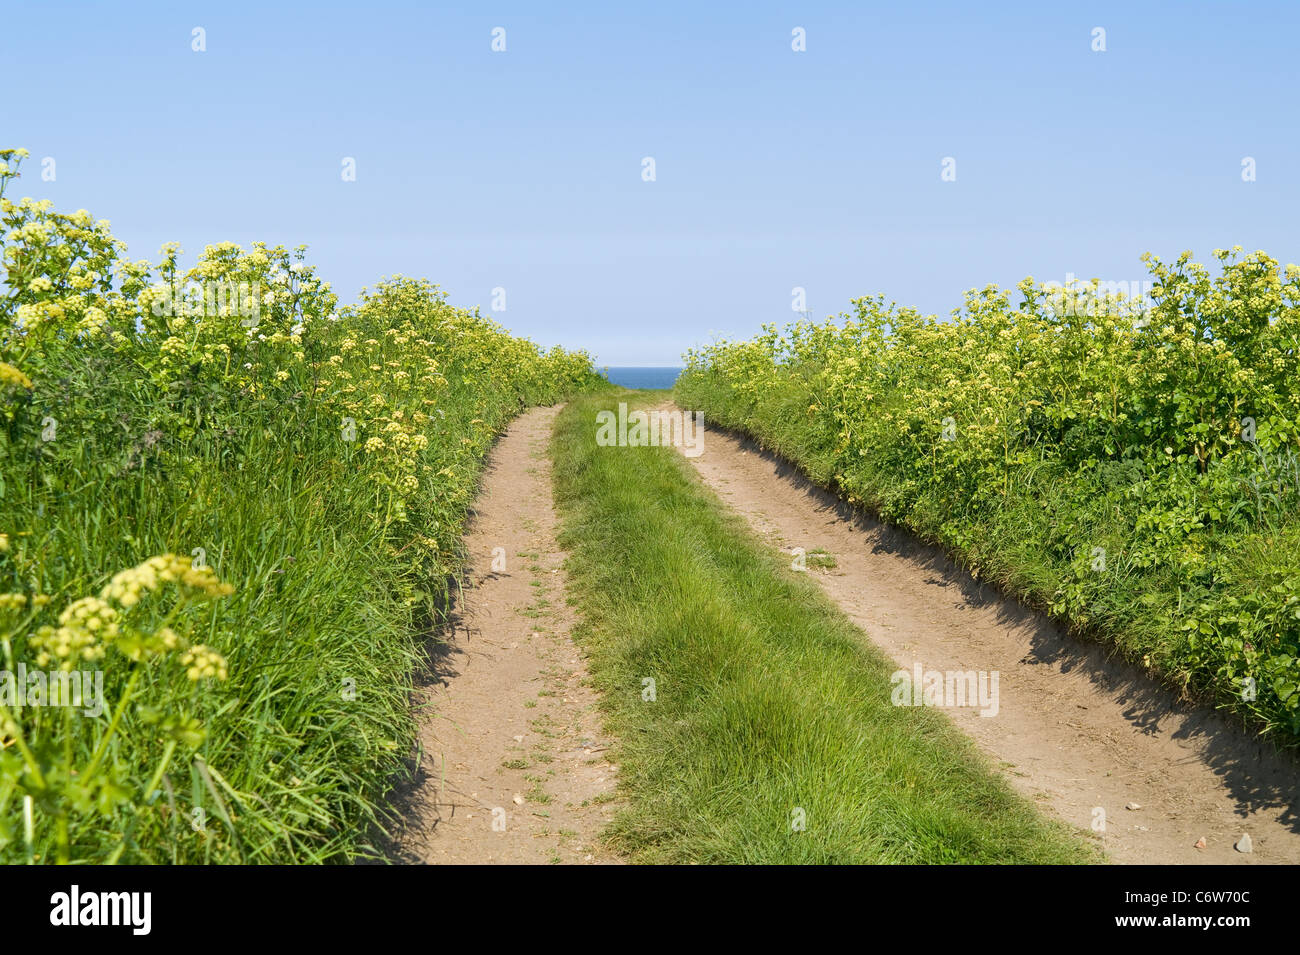 Farm Track Leading to View of Sea and Sky - Stock Image